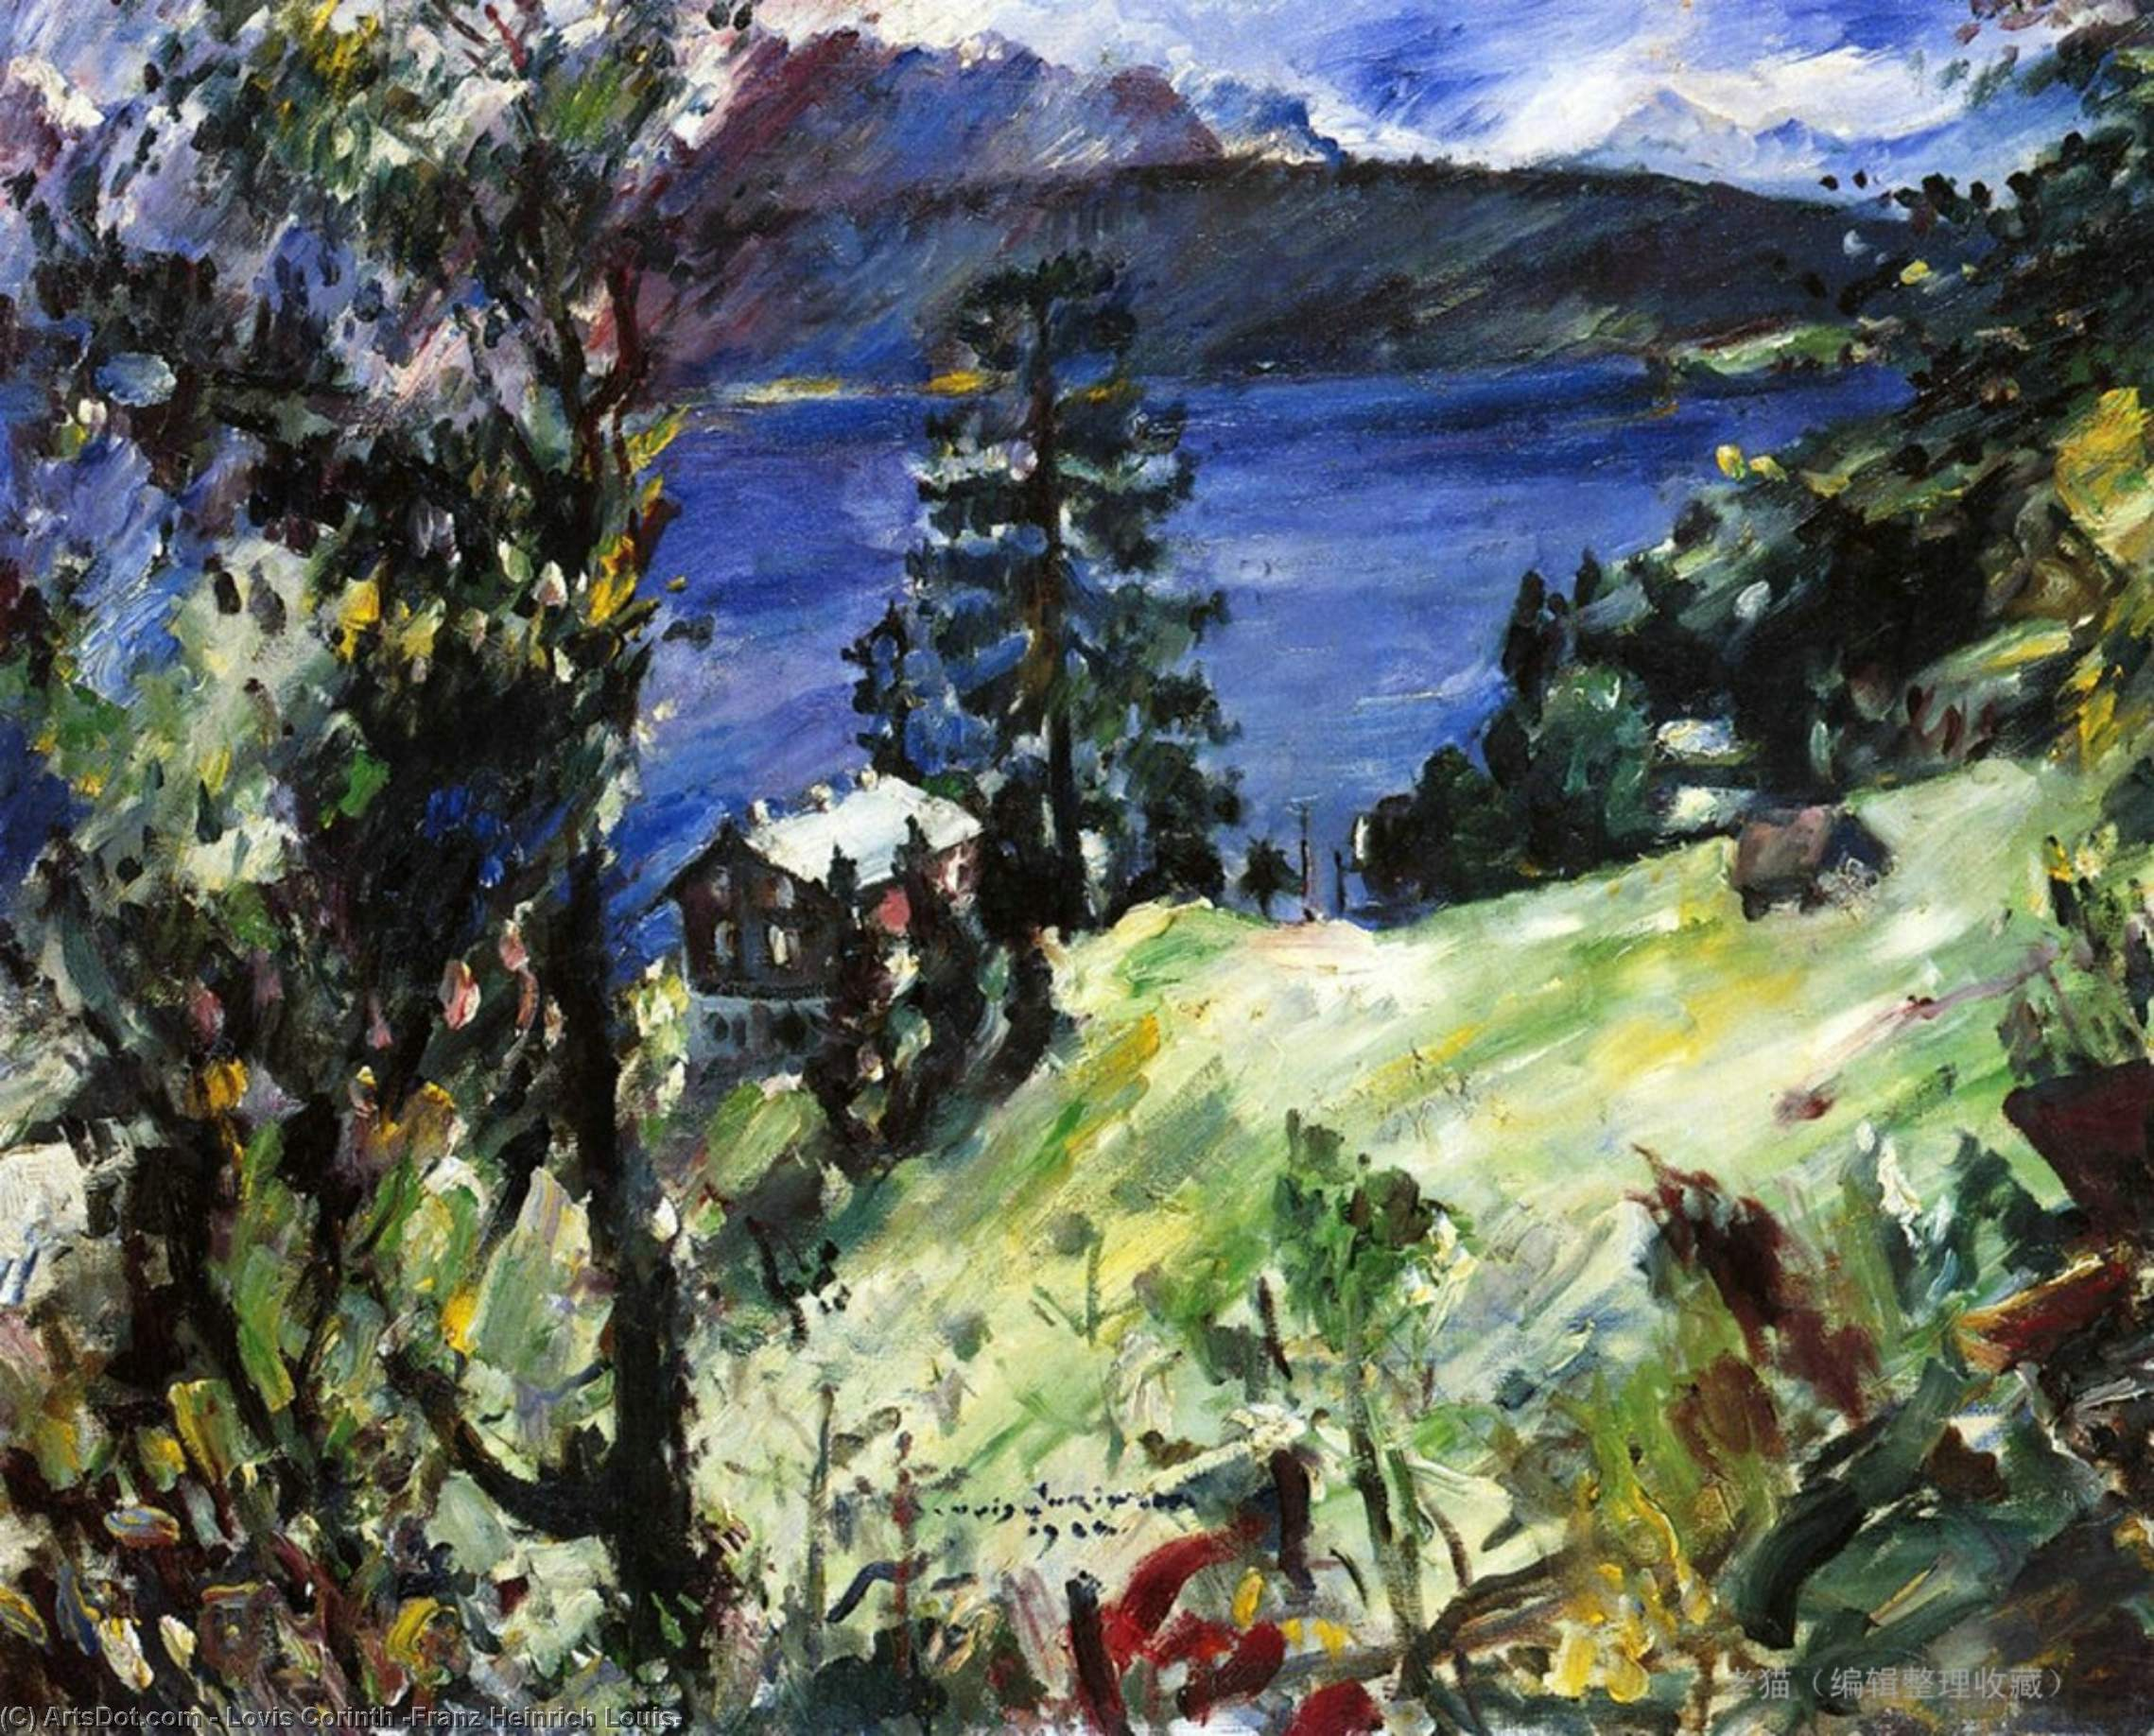 Walchensee Landscape, Oil On Canvas by Lovis Corinth (Franz Heinrich Louis) (1858-1925, Netherlands)